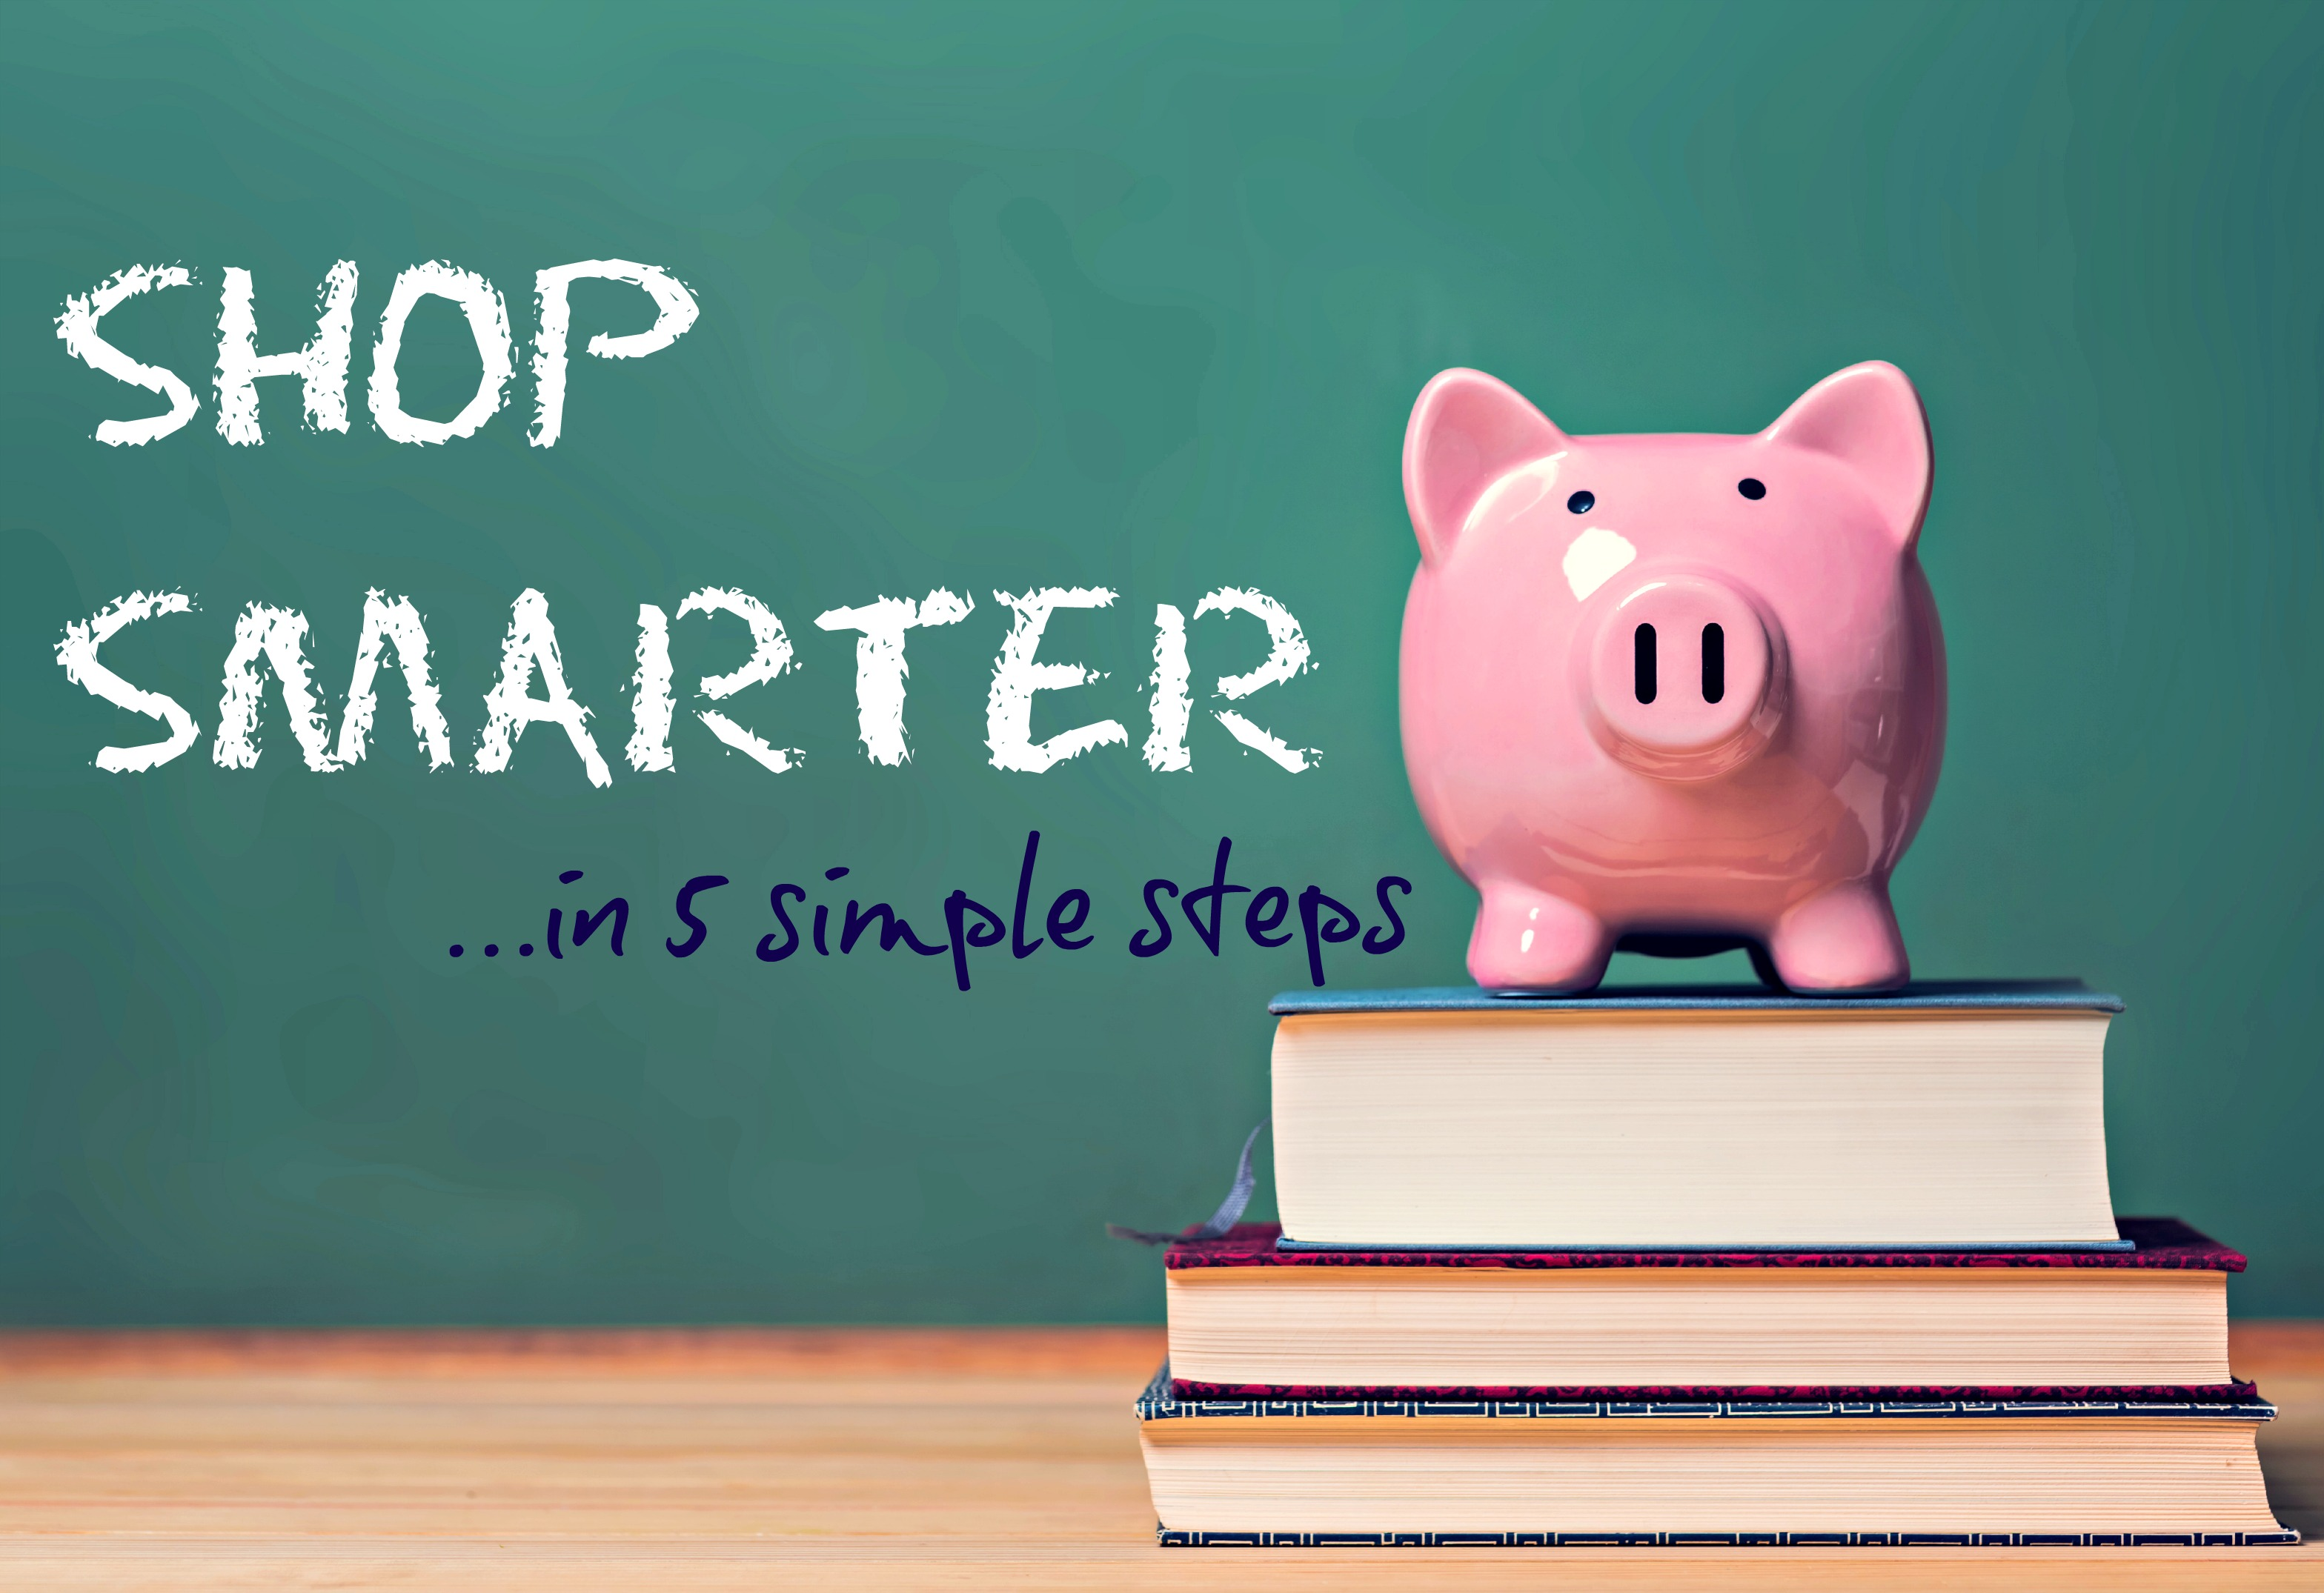 Shop smarter in 5 simple steps